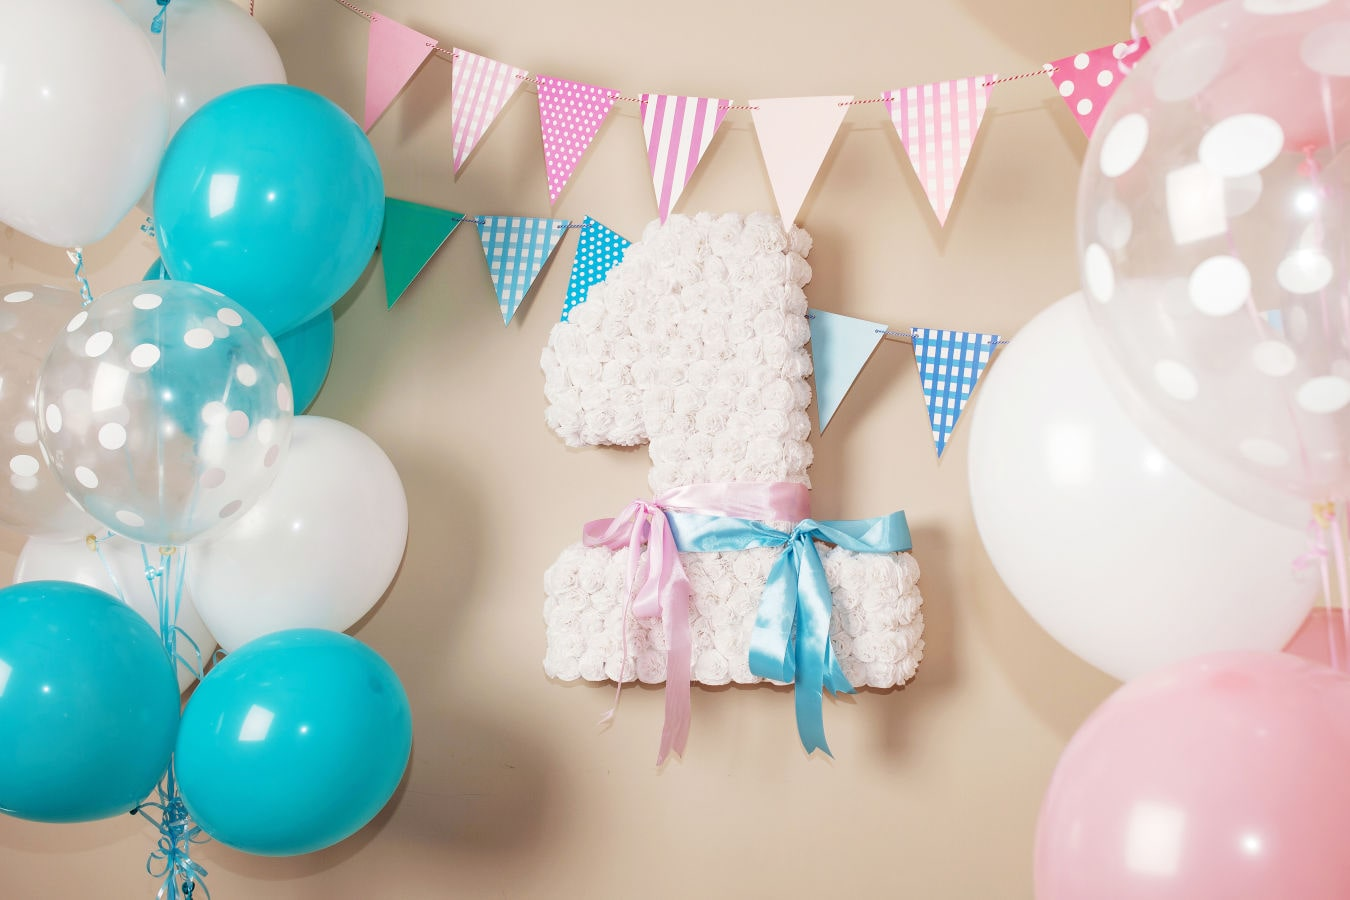 lebenskerze-1-18-geburtstagskerze-geburtskerze-happy-birthday-one-year-first-birthday-element-decorative-concept-balloon-1-number-white-pink-design-birthday-1st-1-year-birthday-decoration